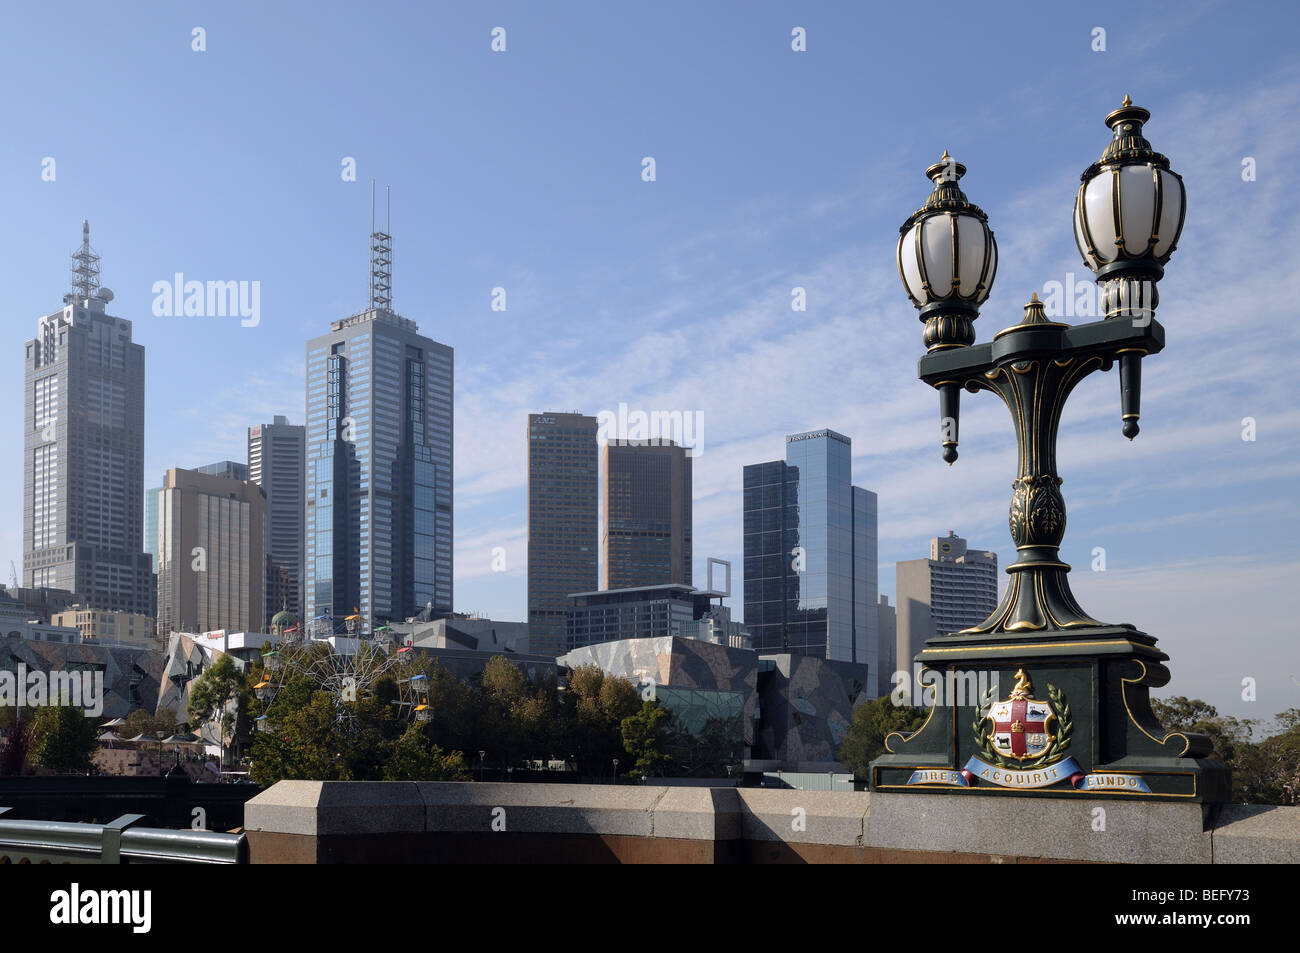 Cast iron lamp and coat of arms on Princes Bridge over Yarra River Melbourne Australia with high rise buildings - Stock Image